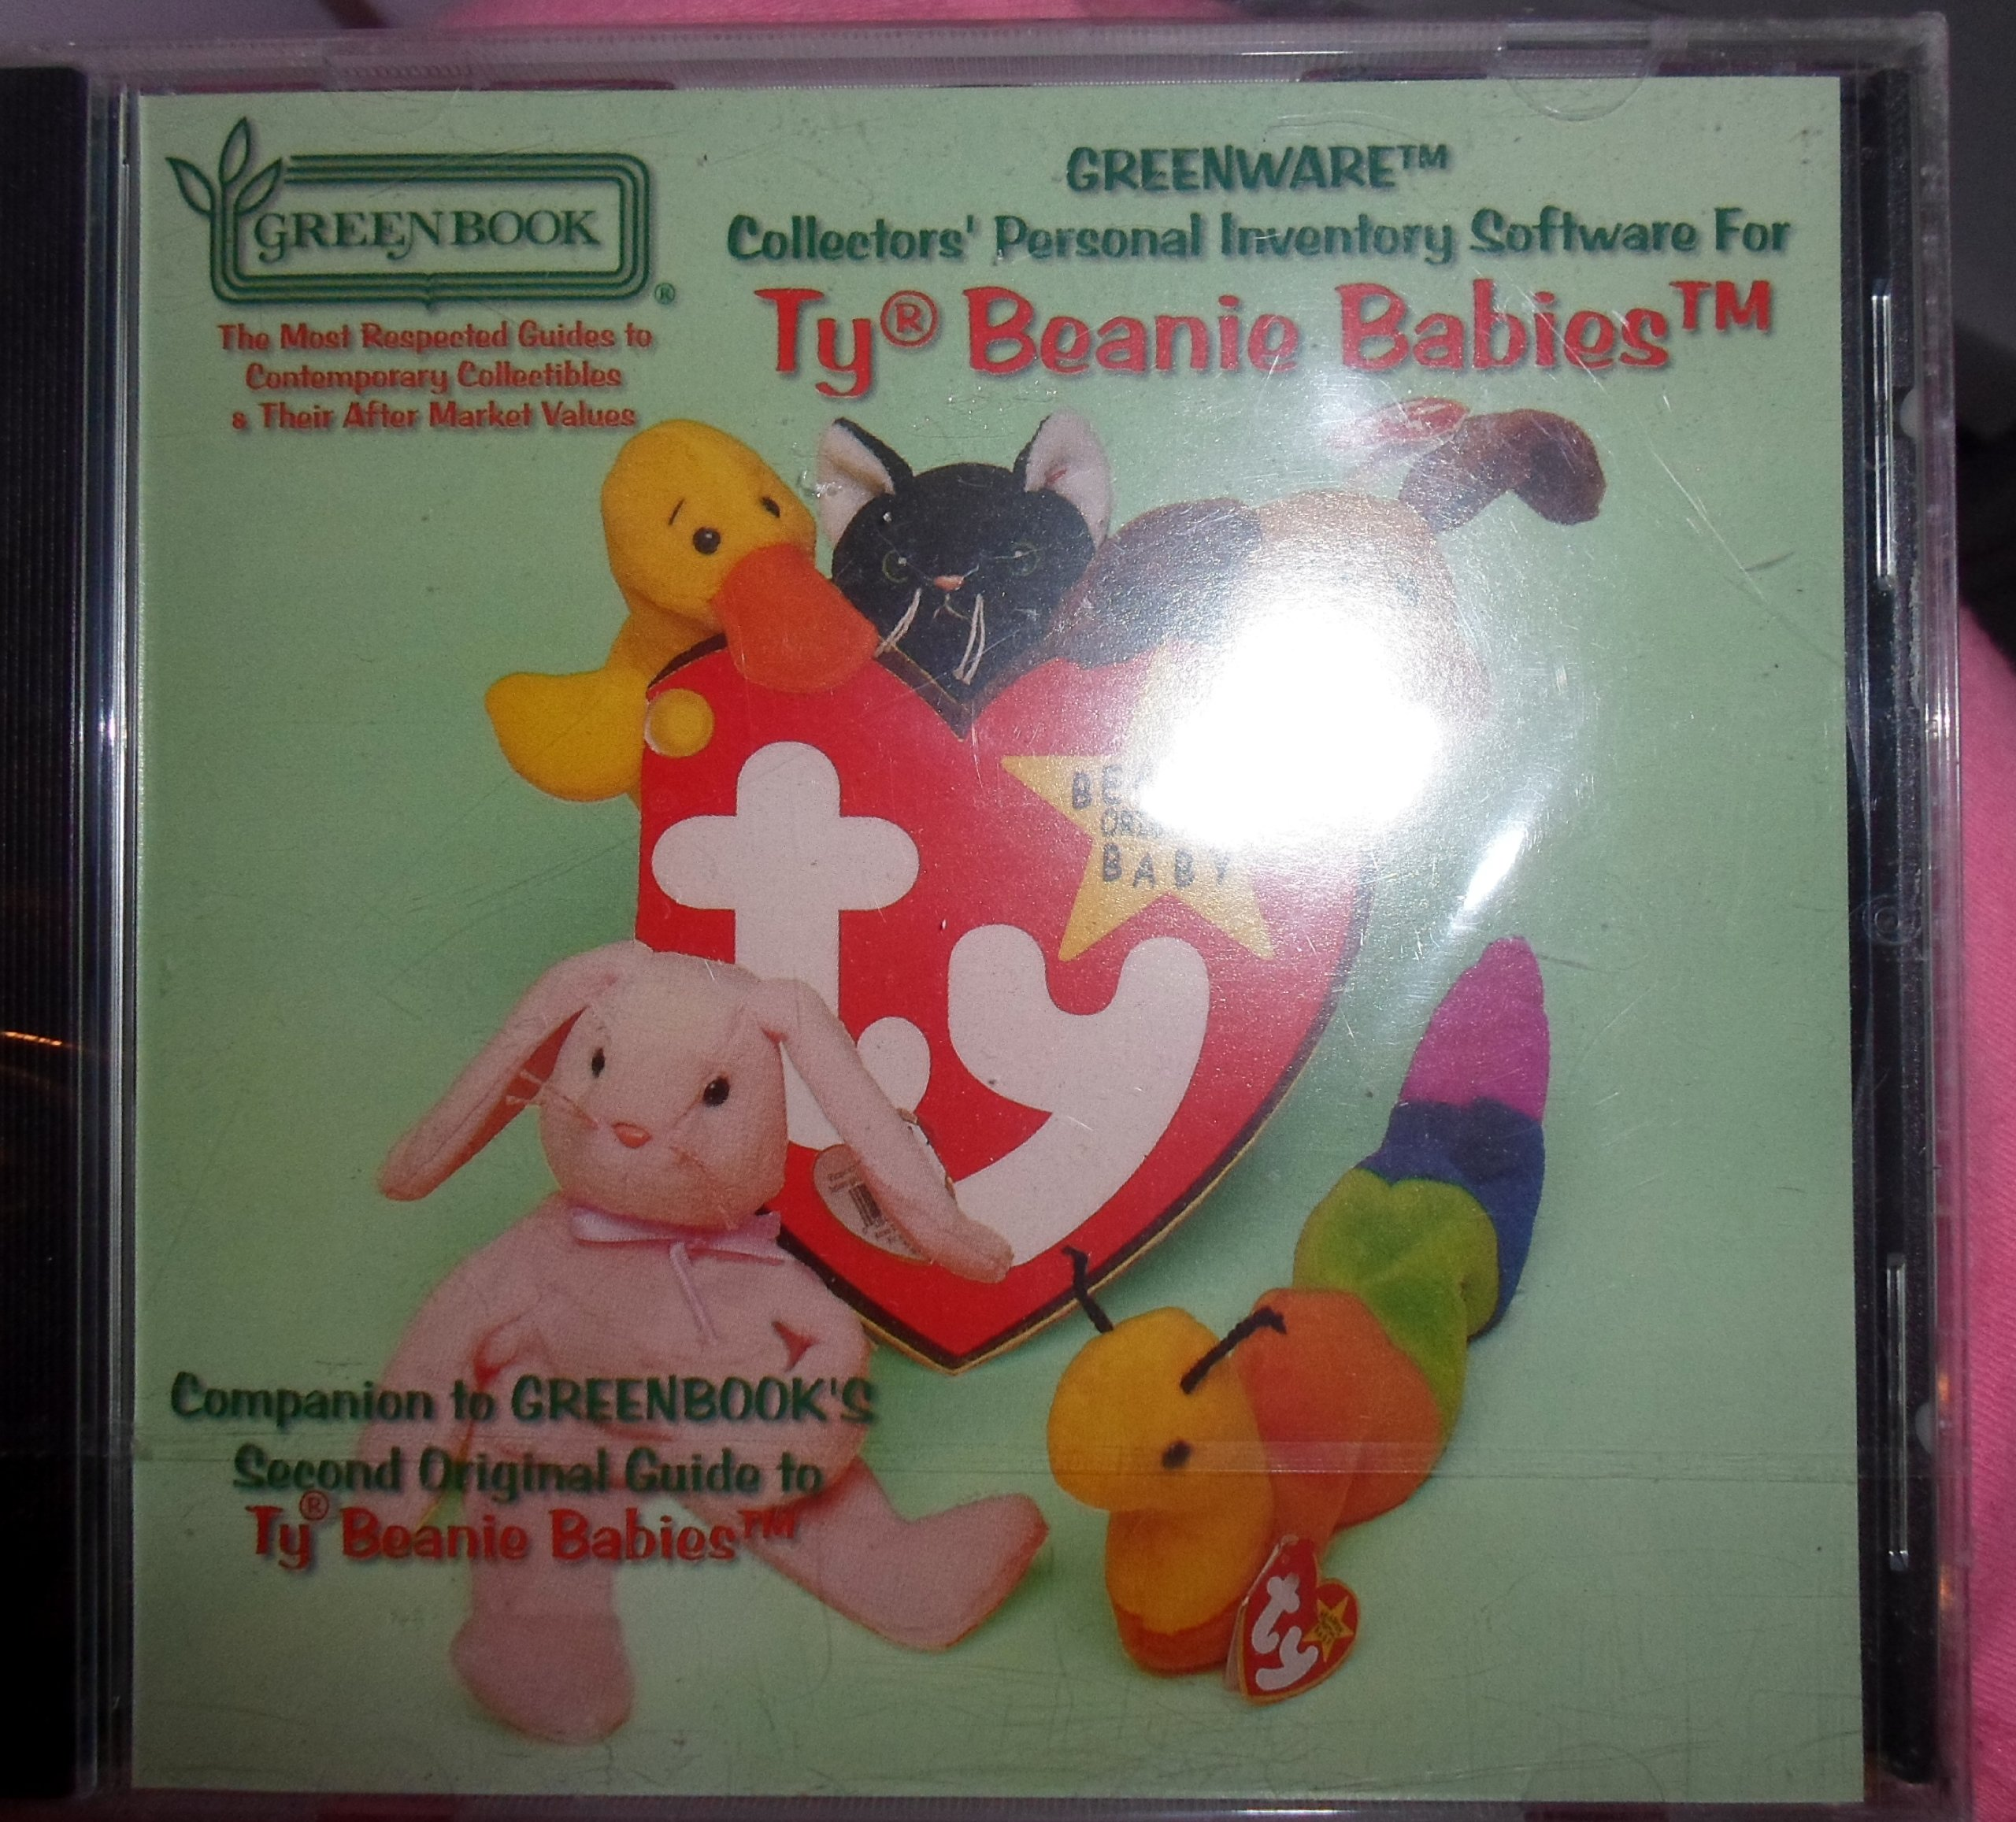 Inventory Software for Ty Beanie Babies (Oo)